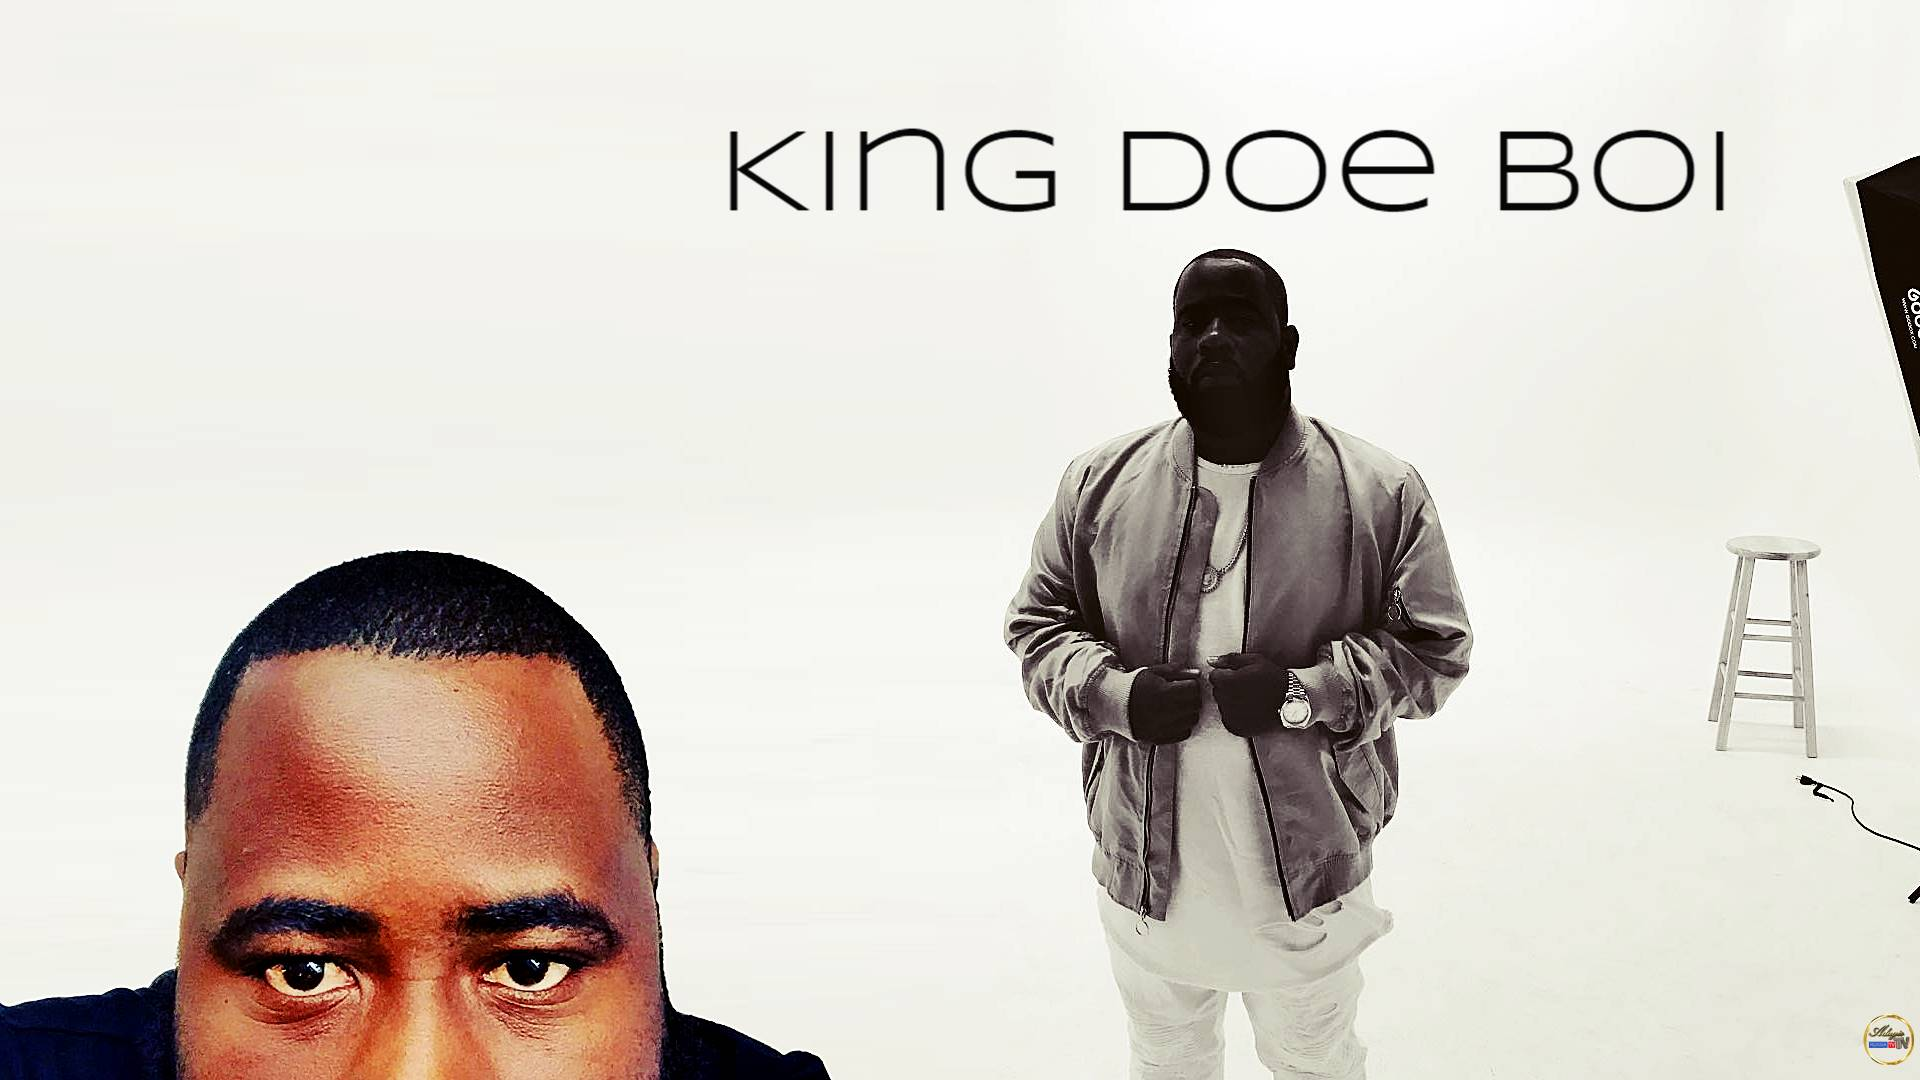 King Doe Boi